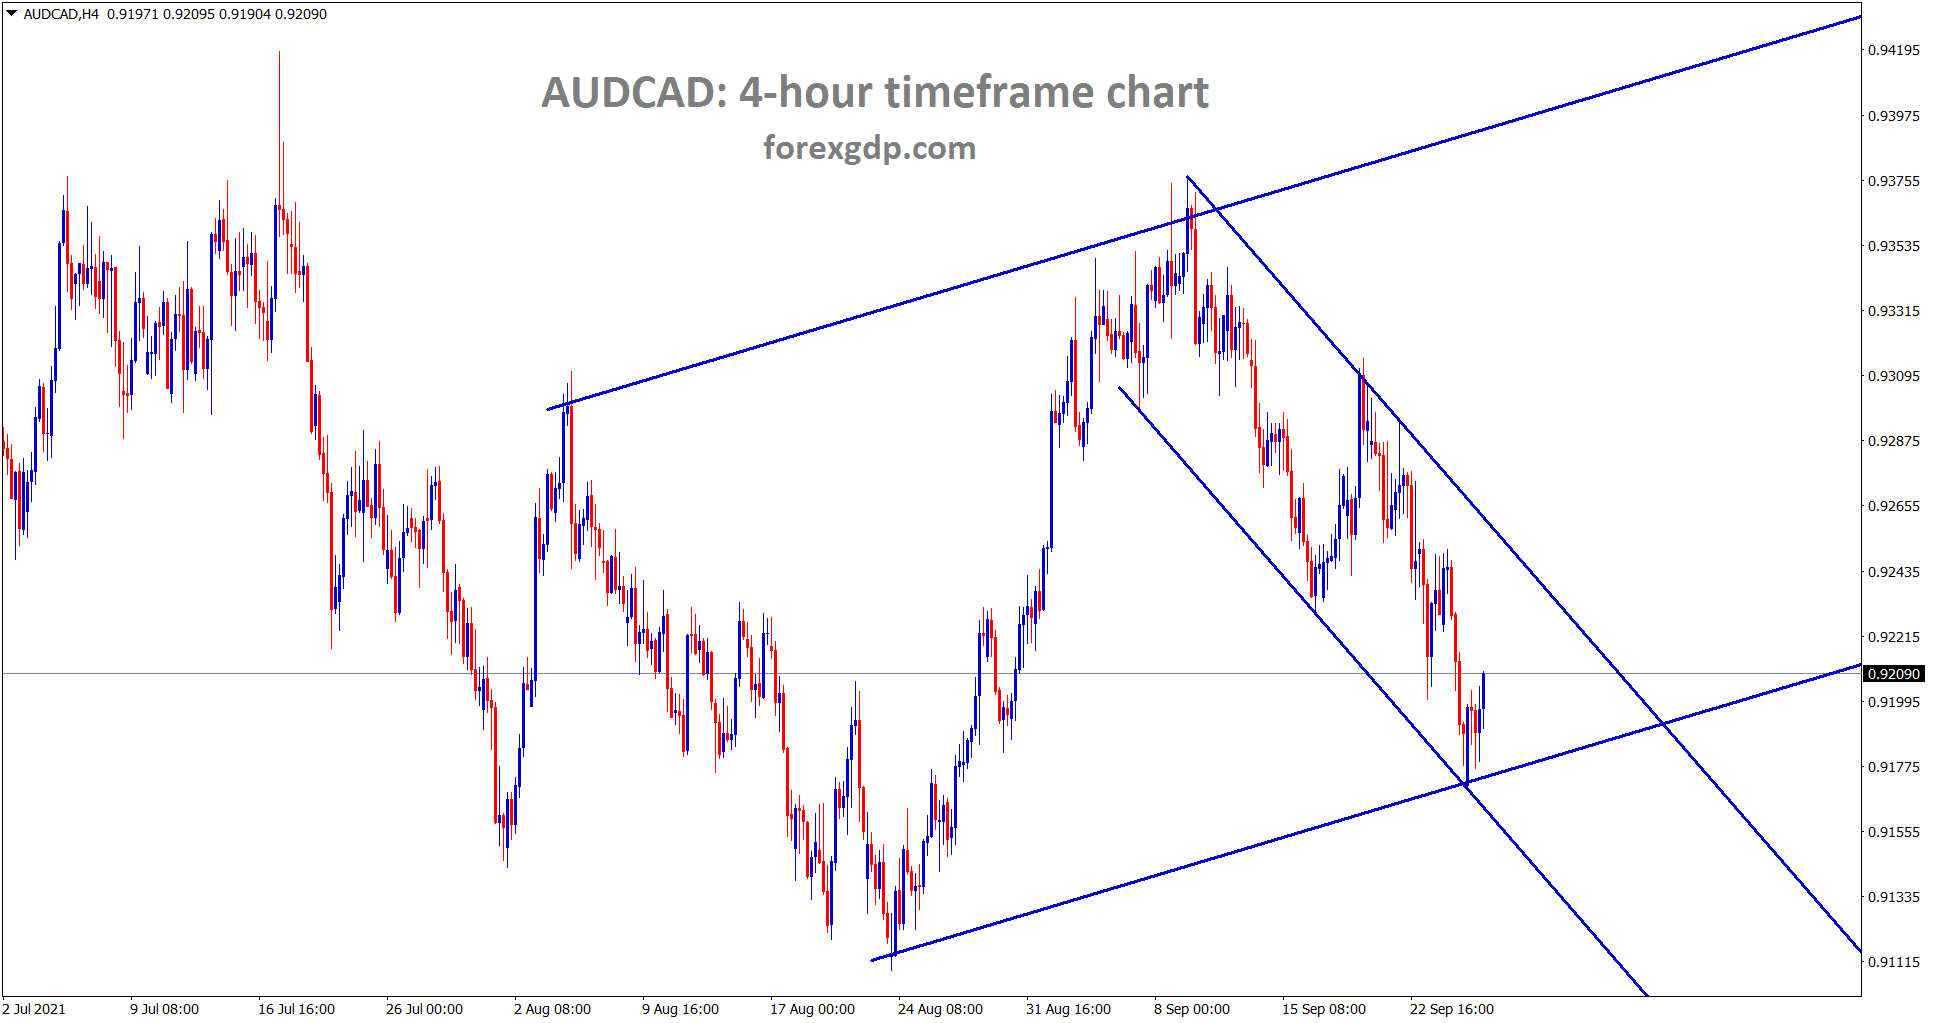 AUDCAD is rebounding from the lower low level of minor descending channel and major ascending channel